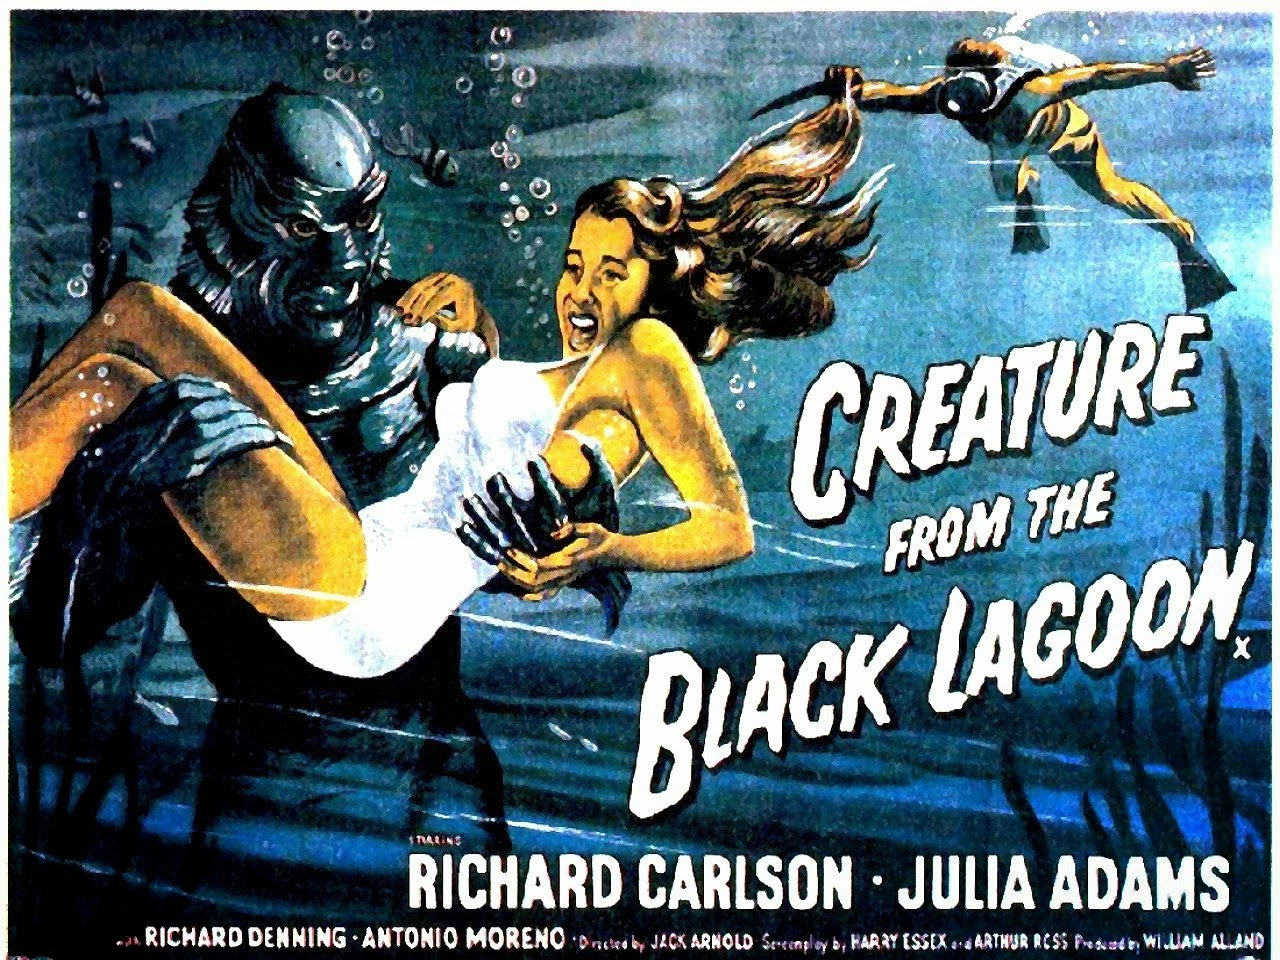 sci-fi film fiesta: creature from the black lagoon (1954)